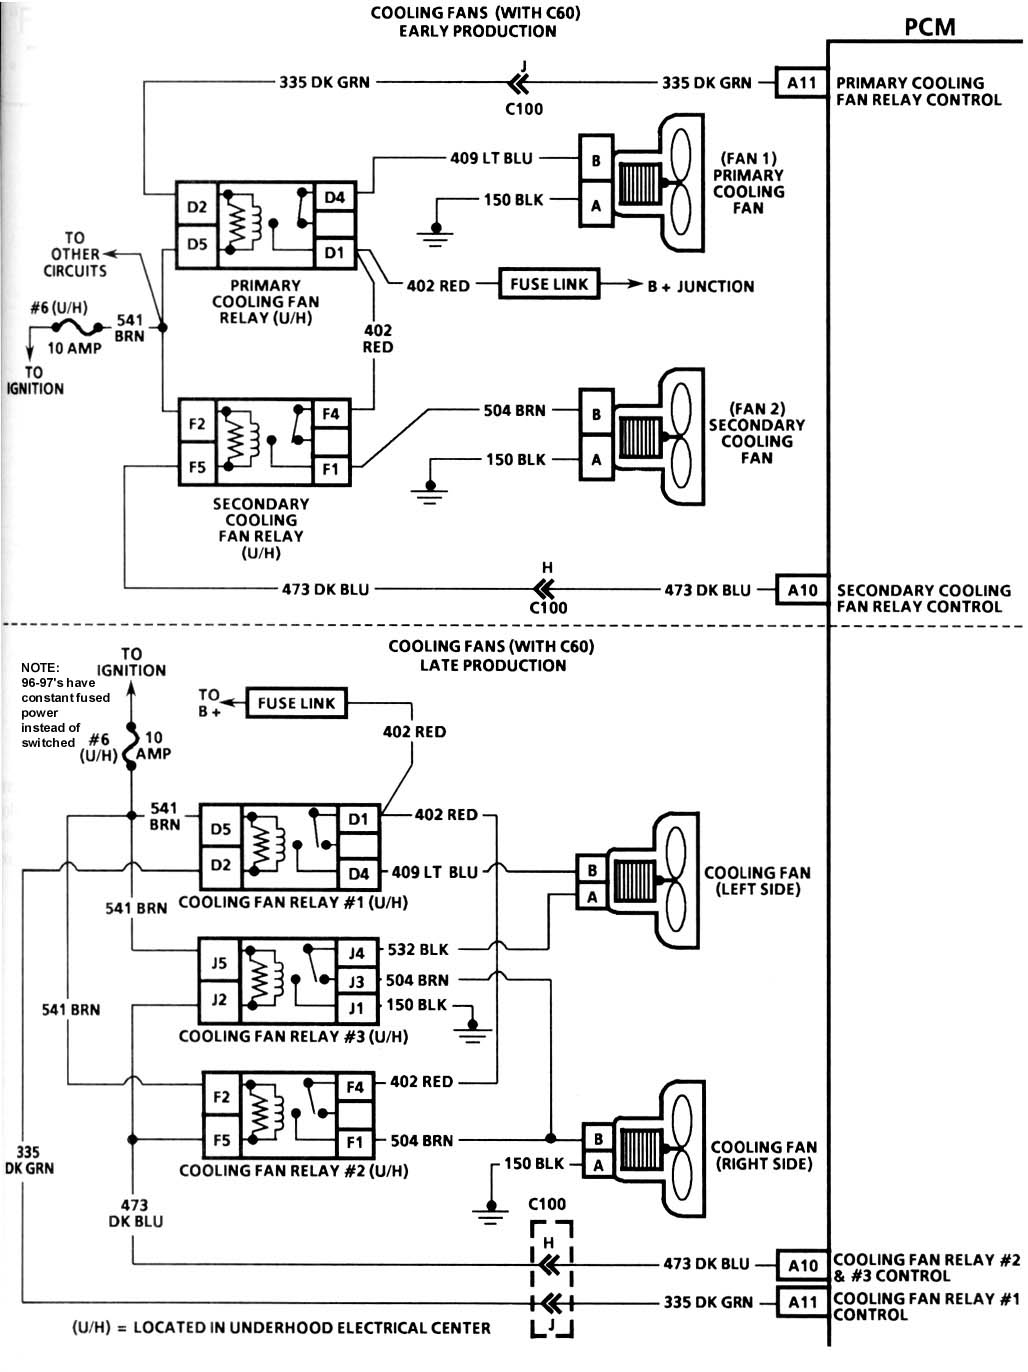 Radiator Electric Fan Wiring Diagram from static-cdn.imageservice.cloud